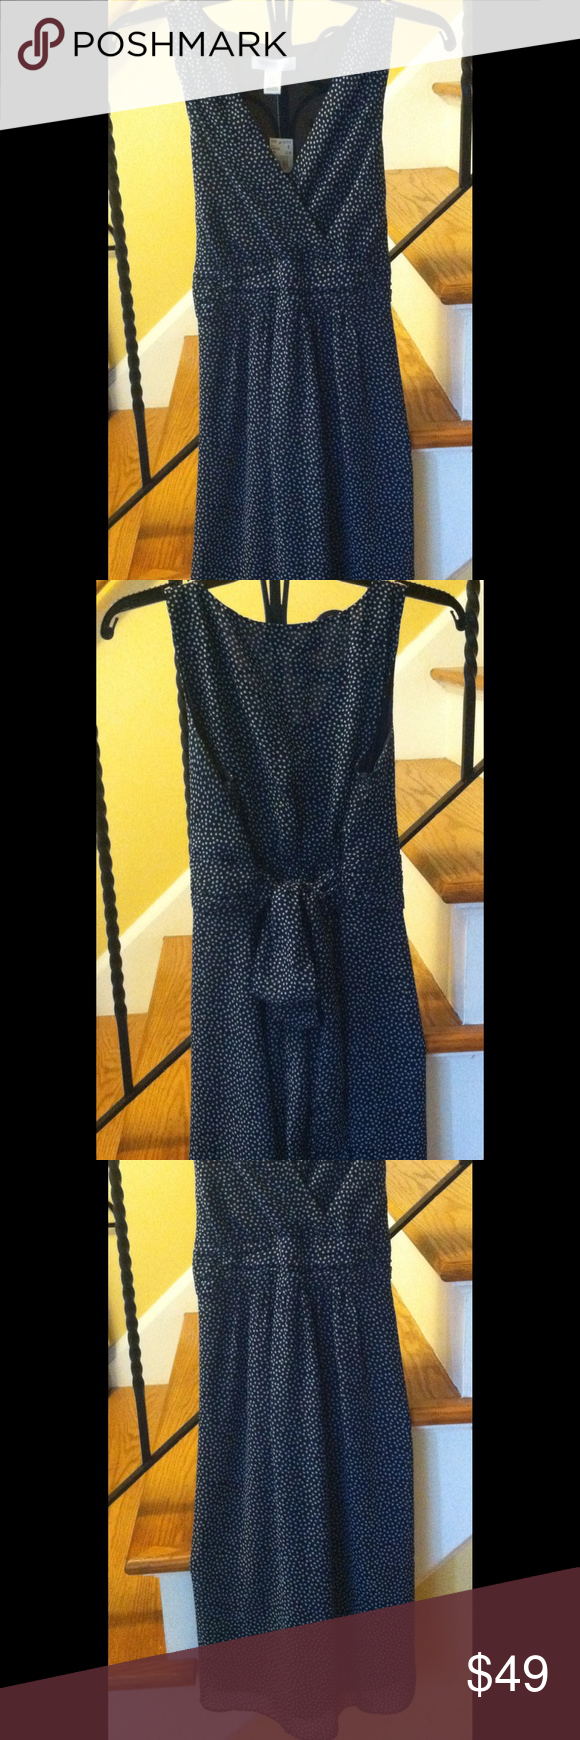 Sold on ebay motherhood maternity tie back dress motherhood motherhood maternity tie back dress motherhood maternity tie back dress dark bluewhite polka dot small buy the size you are when not pregnant ombrellifo Gallery